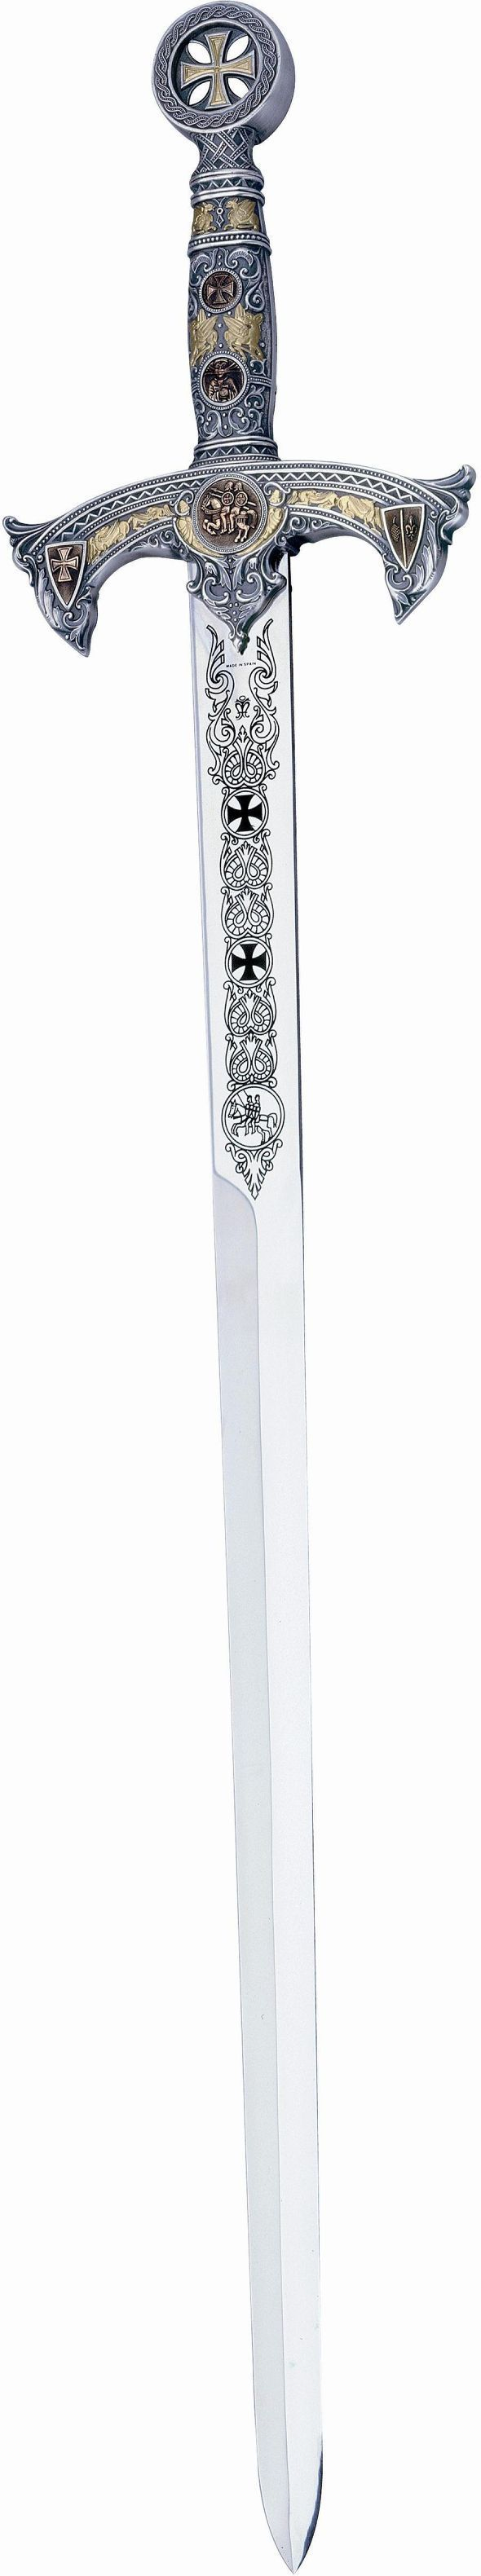 imagesofswords | Deluxe Medieval Templar Knight Swords by Marto of Spain - Best Deals ...